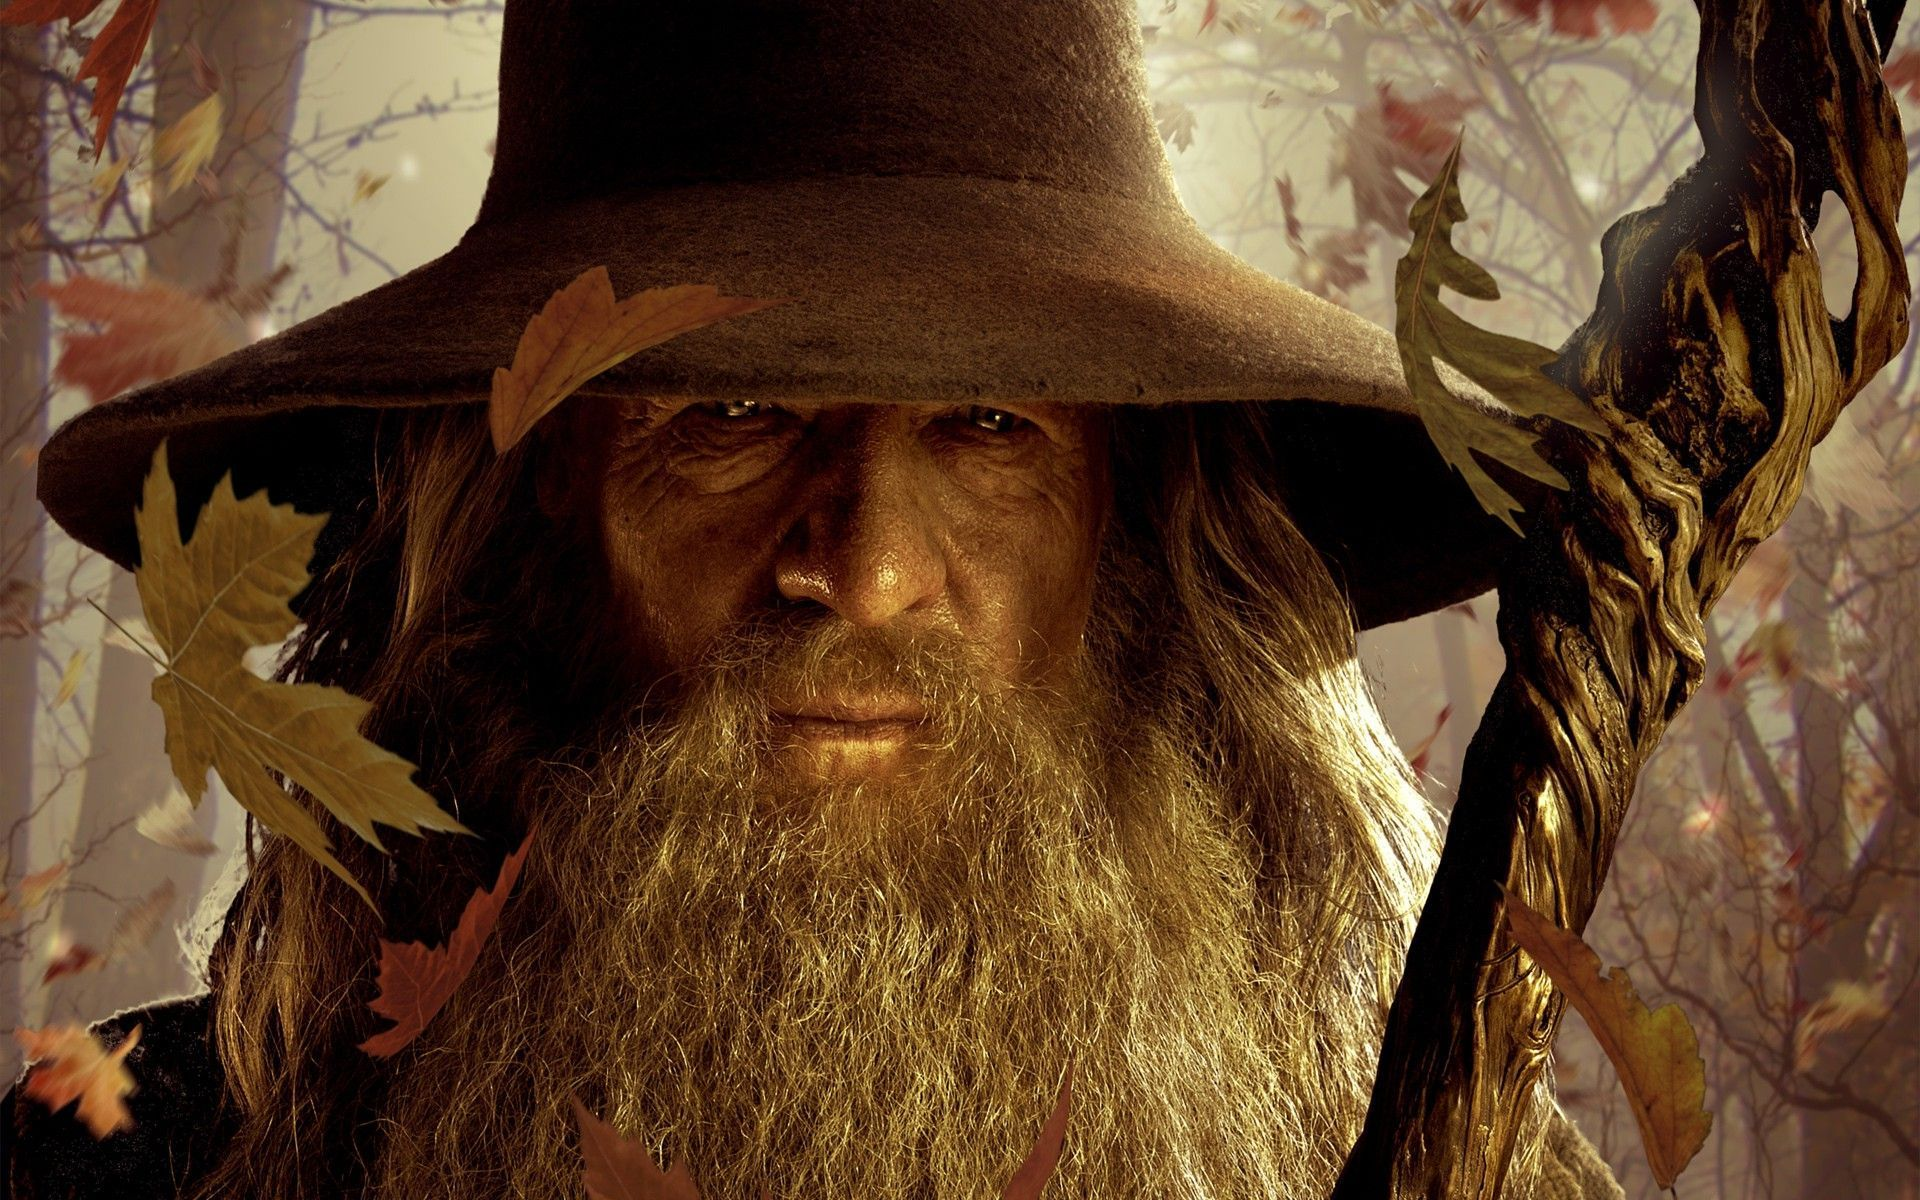 The Lord Of The Rings Wallpapers   Full HD wallpaper search   page 3 1920x1200